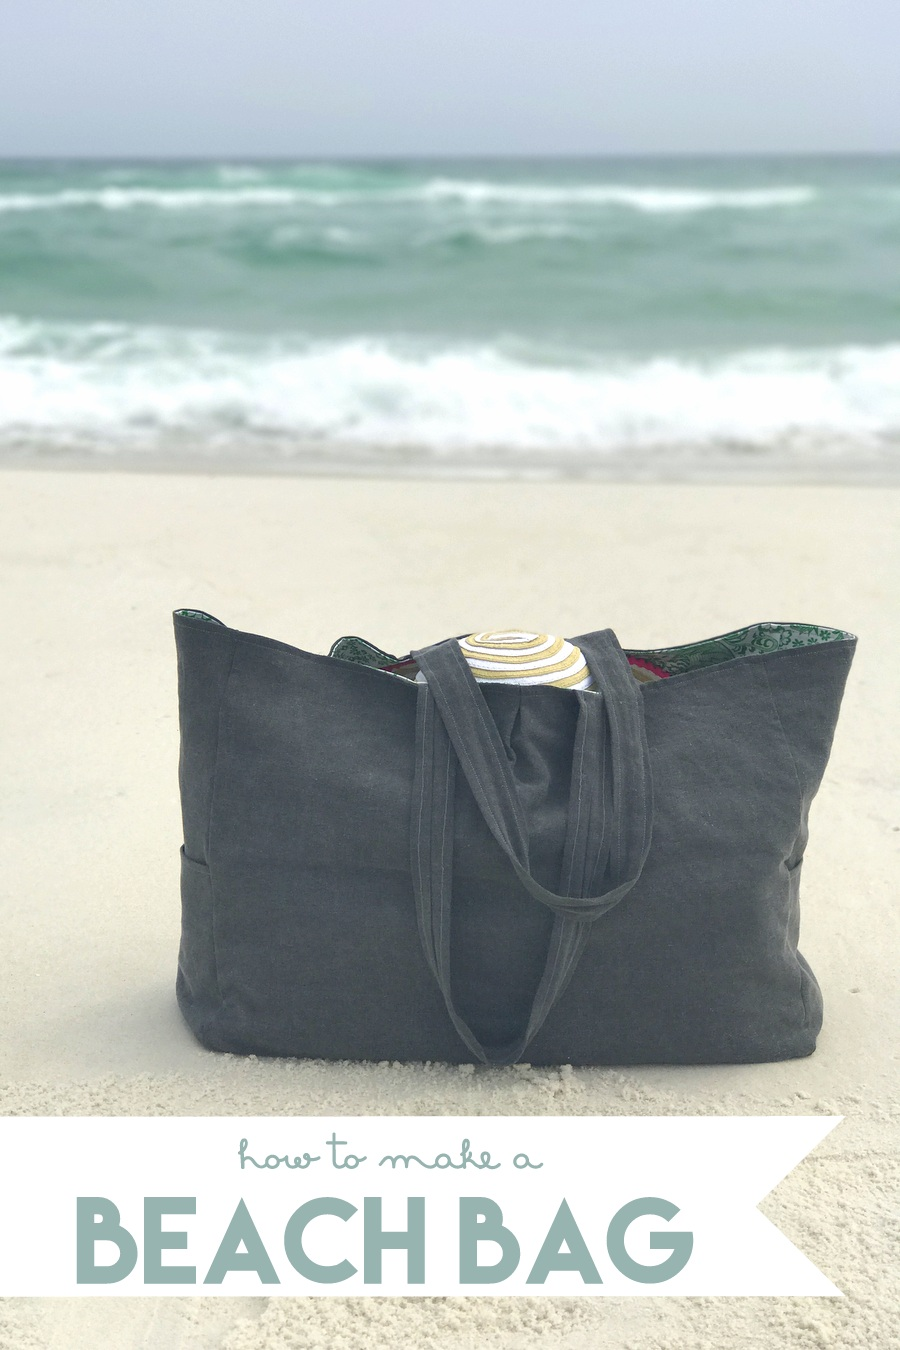 beach bag from kojo designs